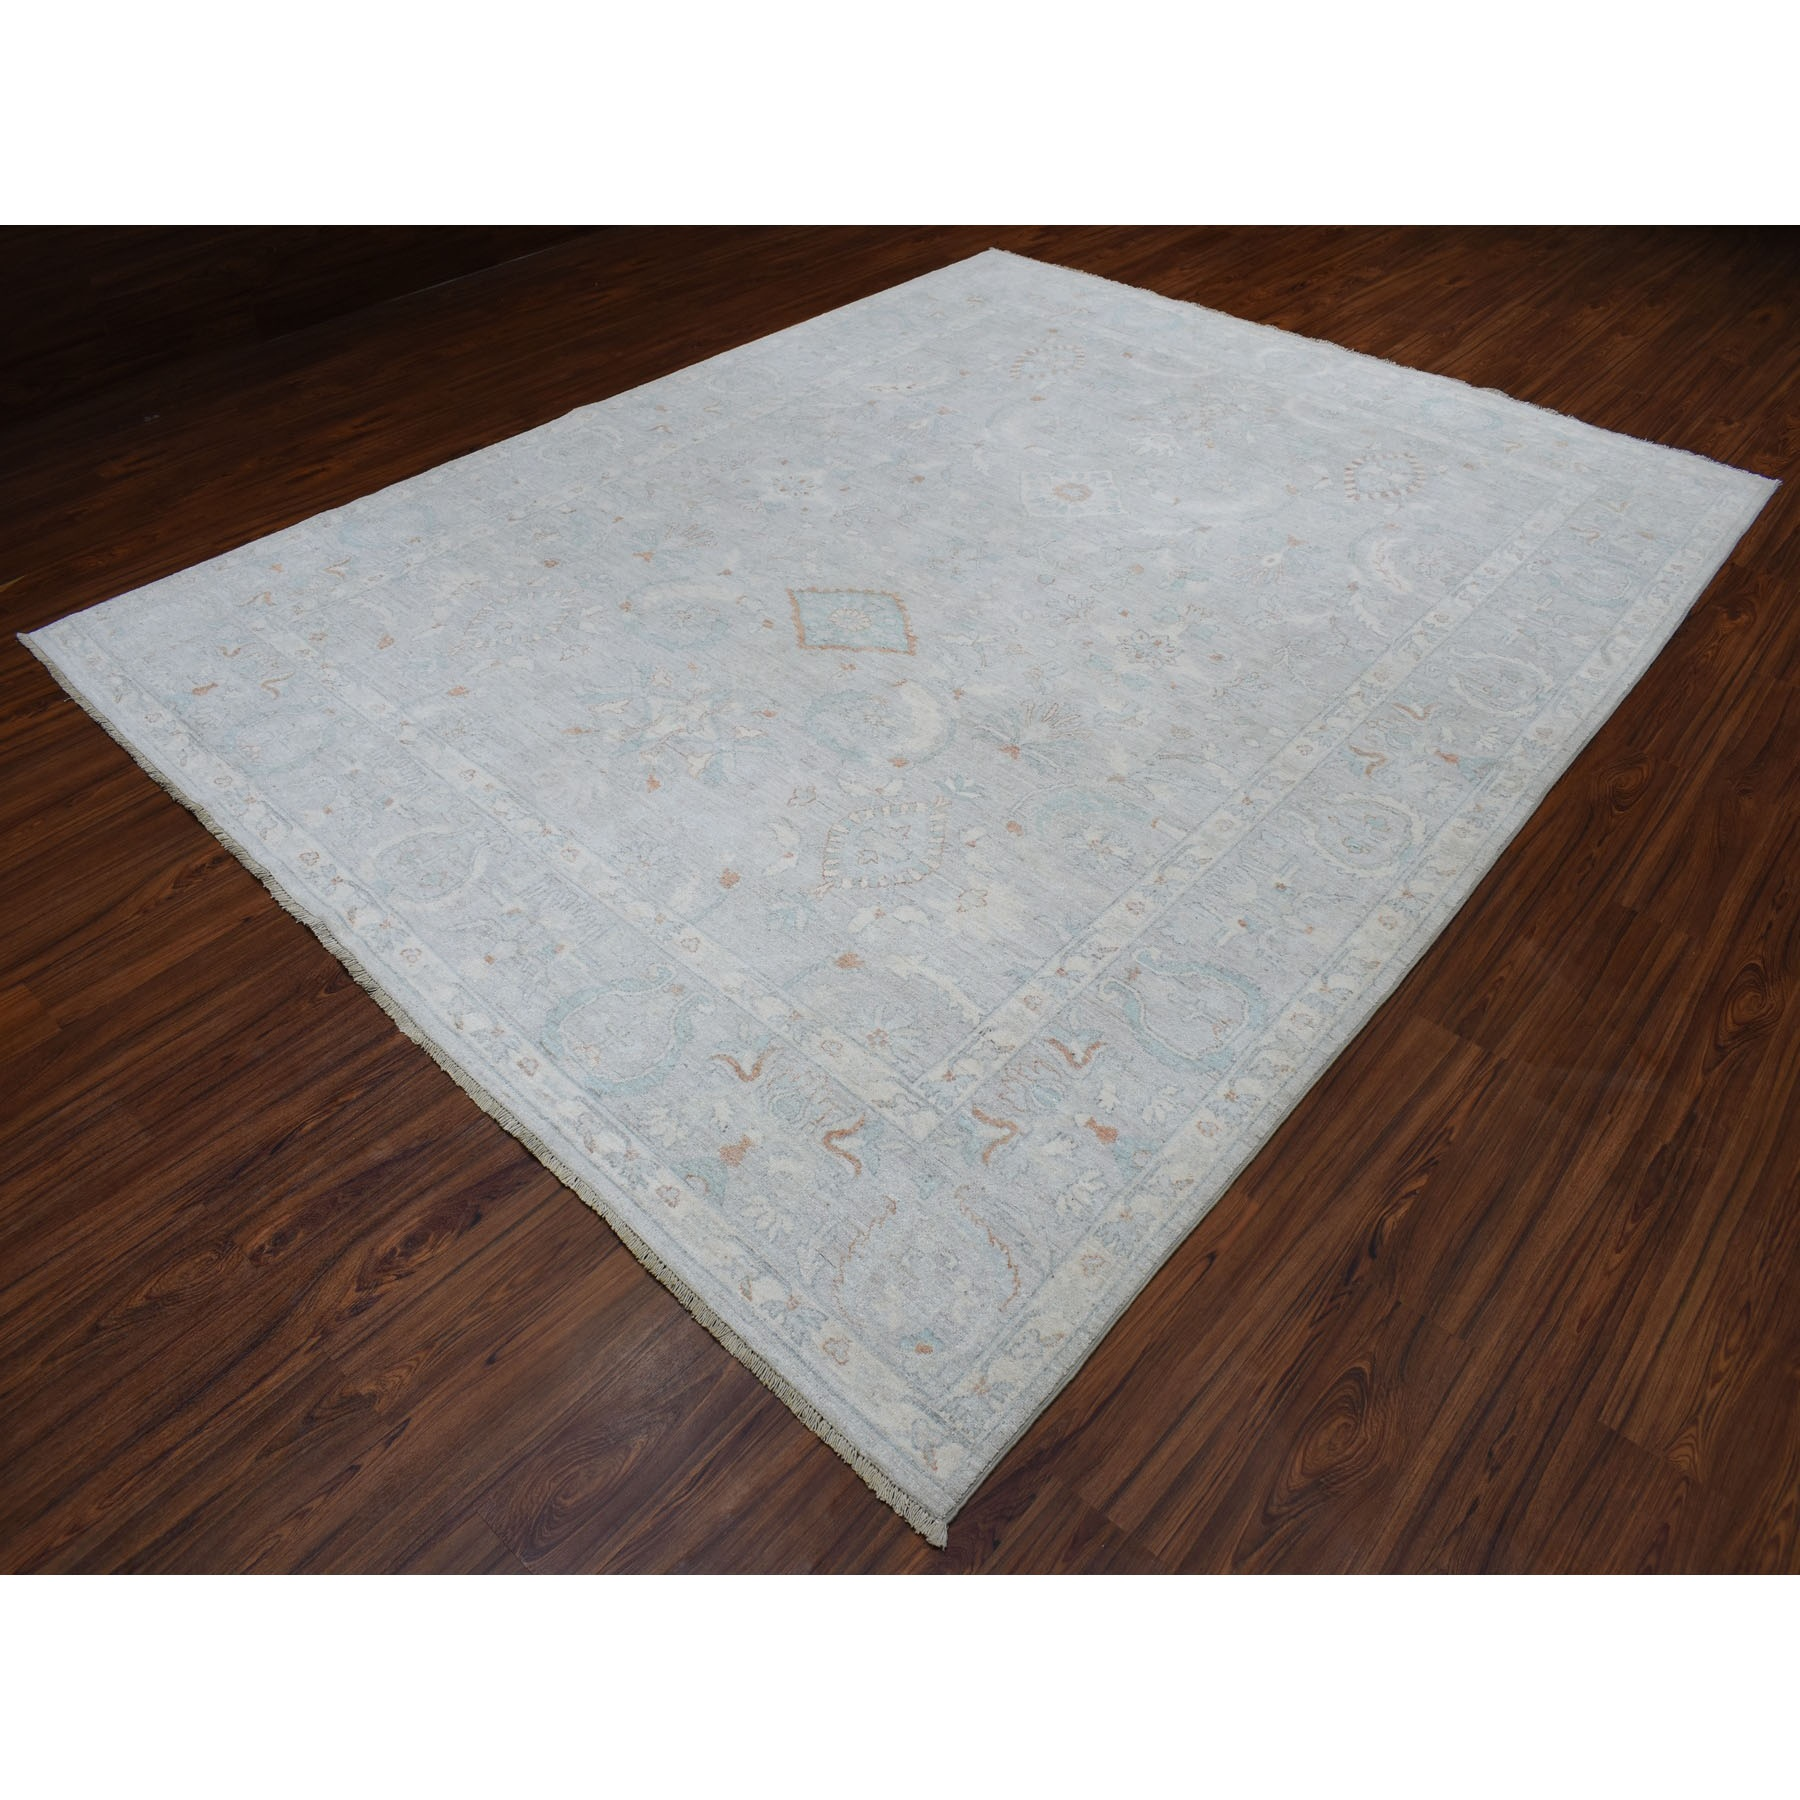 8-9 x11- White Wash Peshawar Pure Wool Hand Knotted Oriental Rug